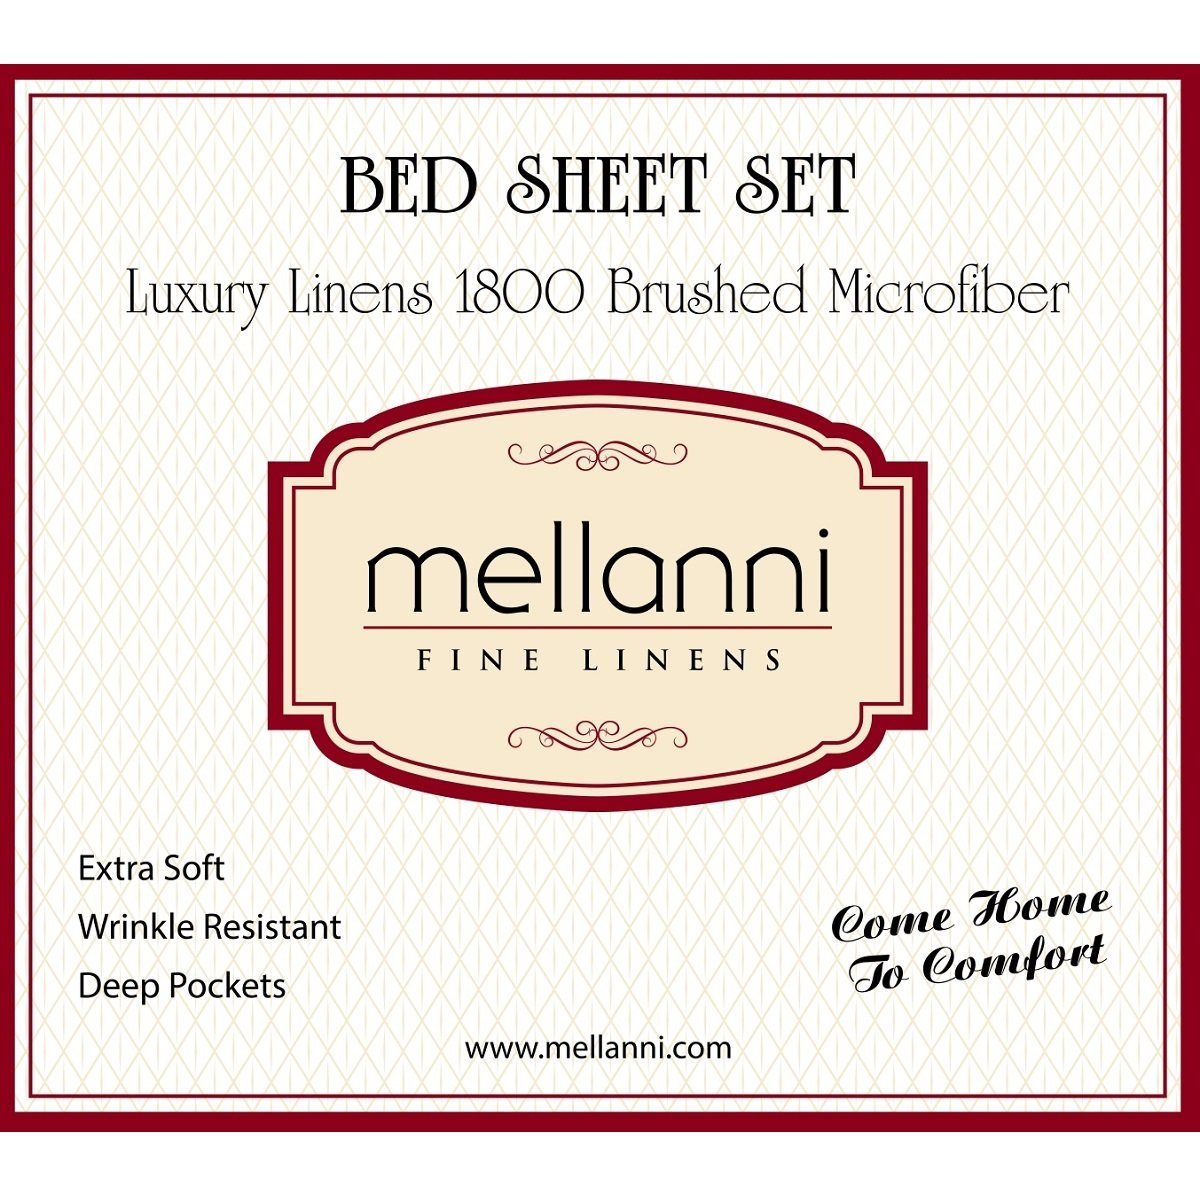 Mellanni Bed Sheet Set - Brushed Microfiber 1800 Bedding - Wrinkle, Fade, Stain Resistant - Hypoallergenic - 4 Piece (King, Spa Blue) by Mellanni (Image #3)